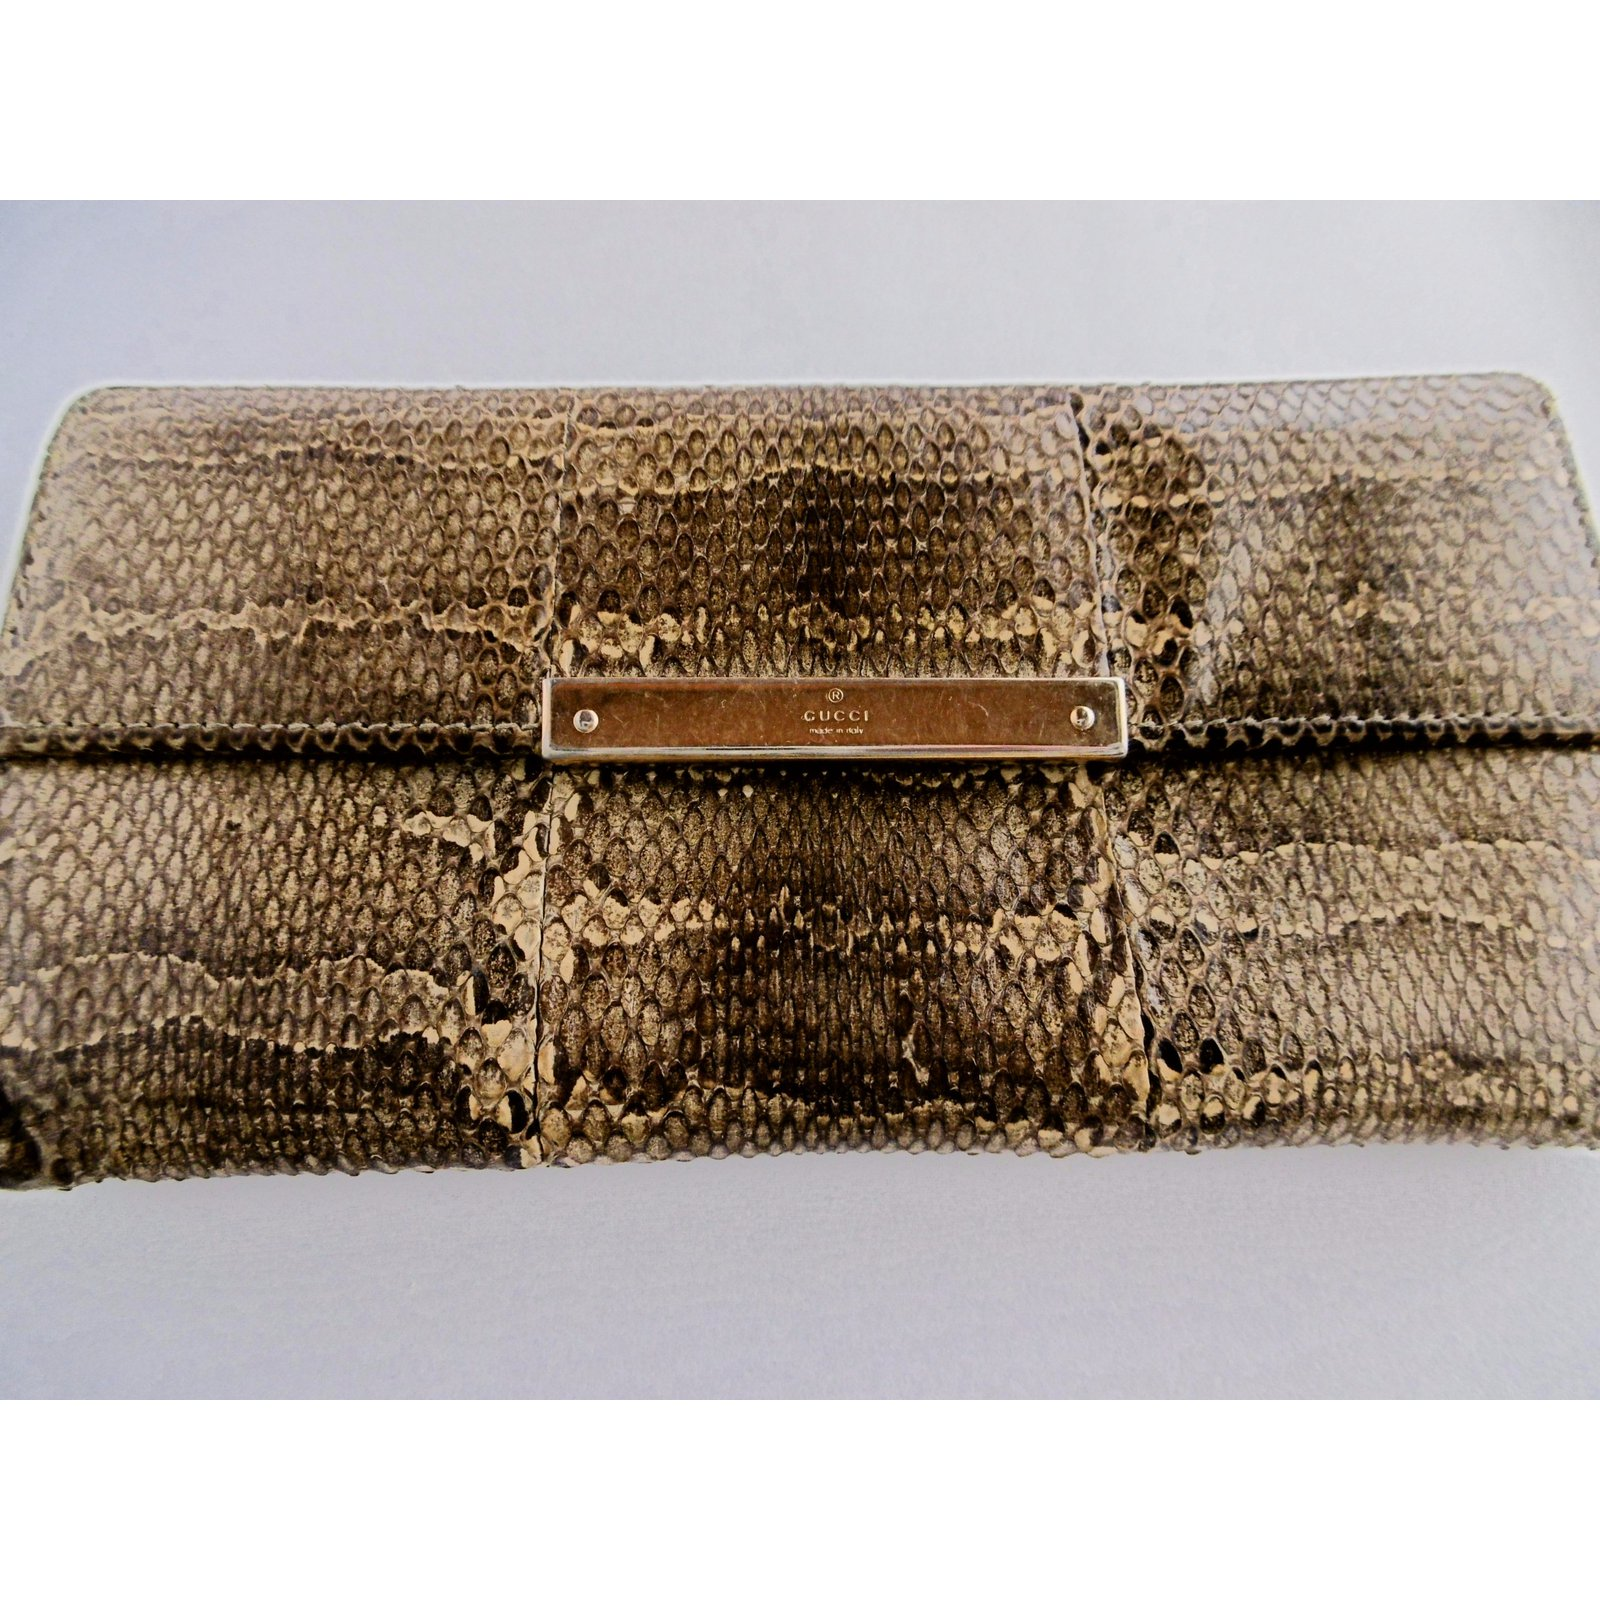 2da3154bfa9b Gucci Gucci Snakeskin Leather Long Wallet Wallets Exotic leather Brown,Beige  ref.34601 - Joli Closet